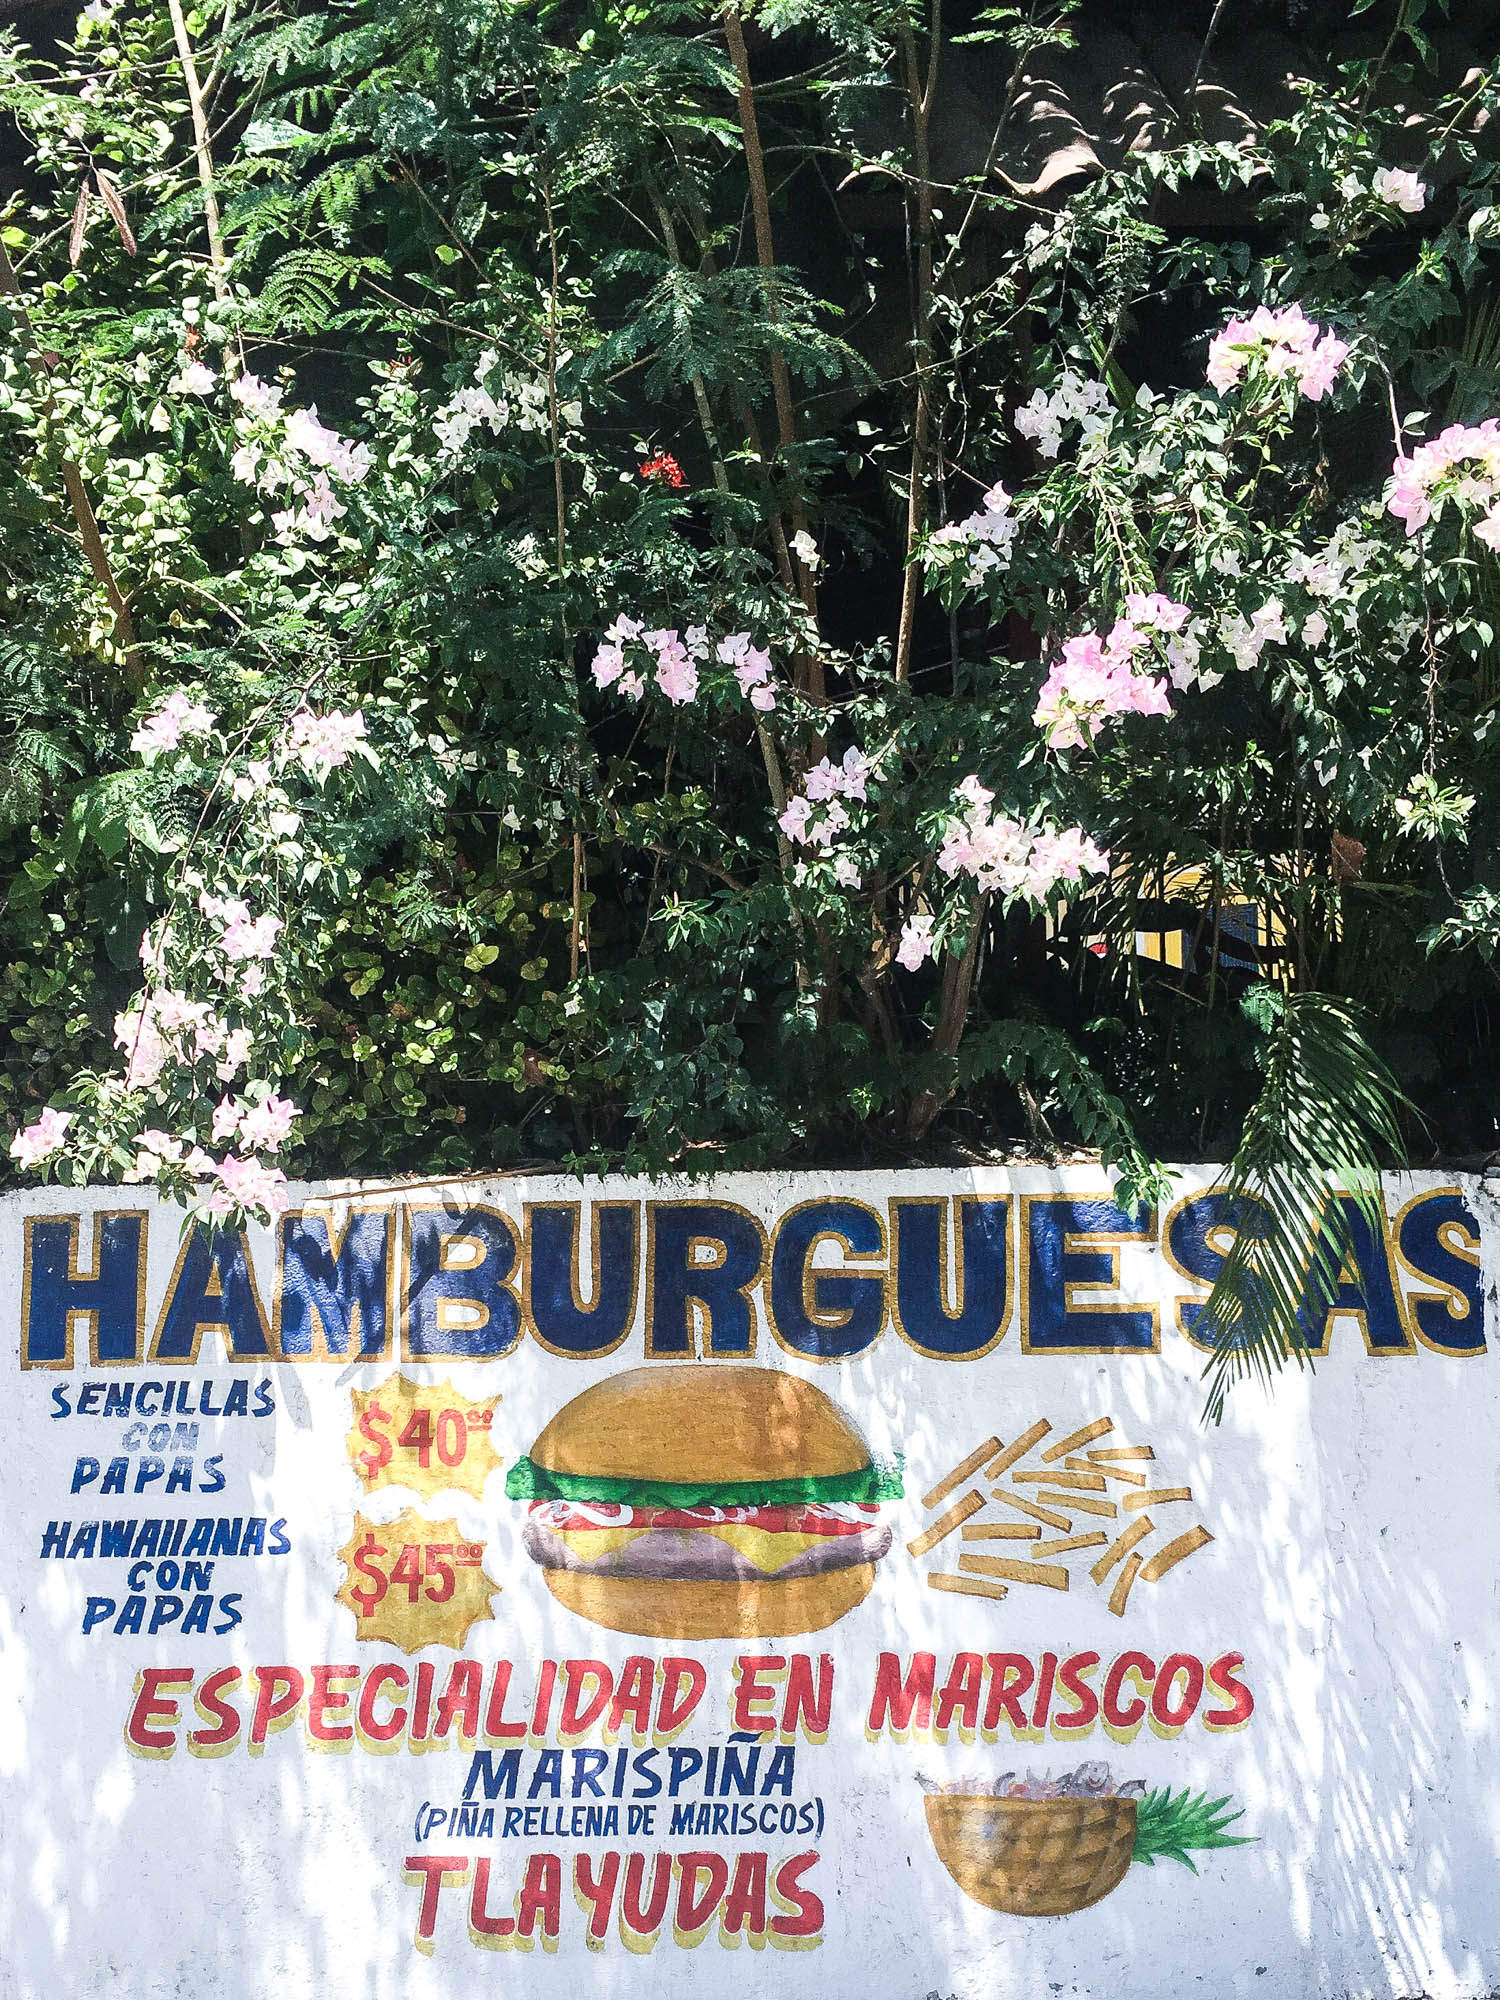 hamburgers || OAXACA CITY, MEXICO FOOD GUIDE || creamandhoney.ca